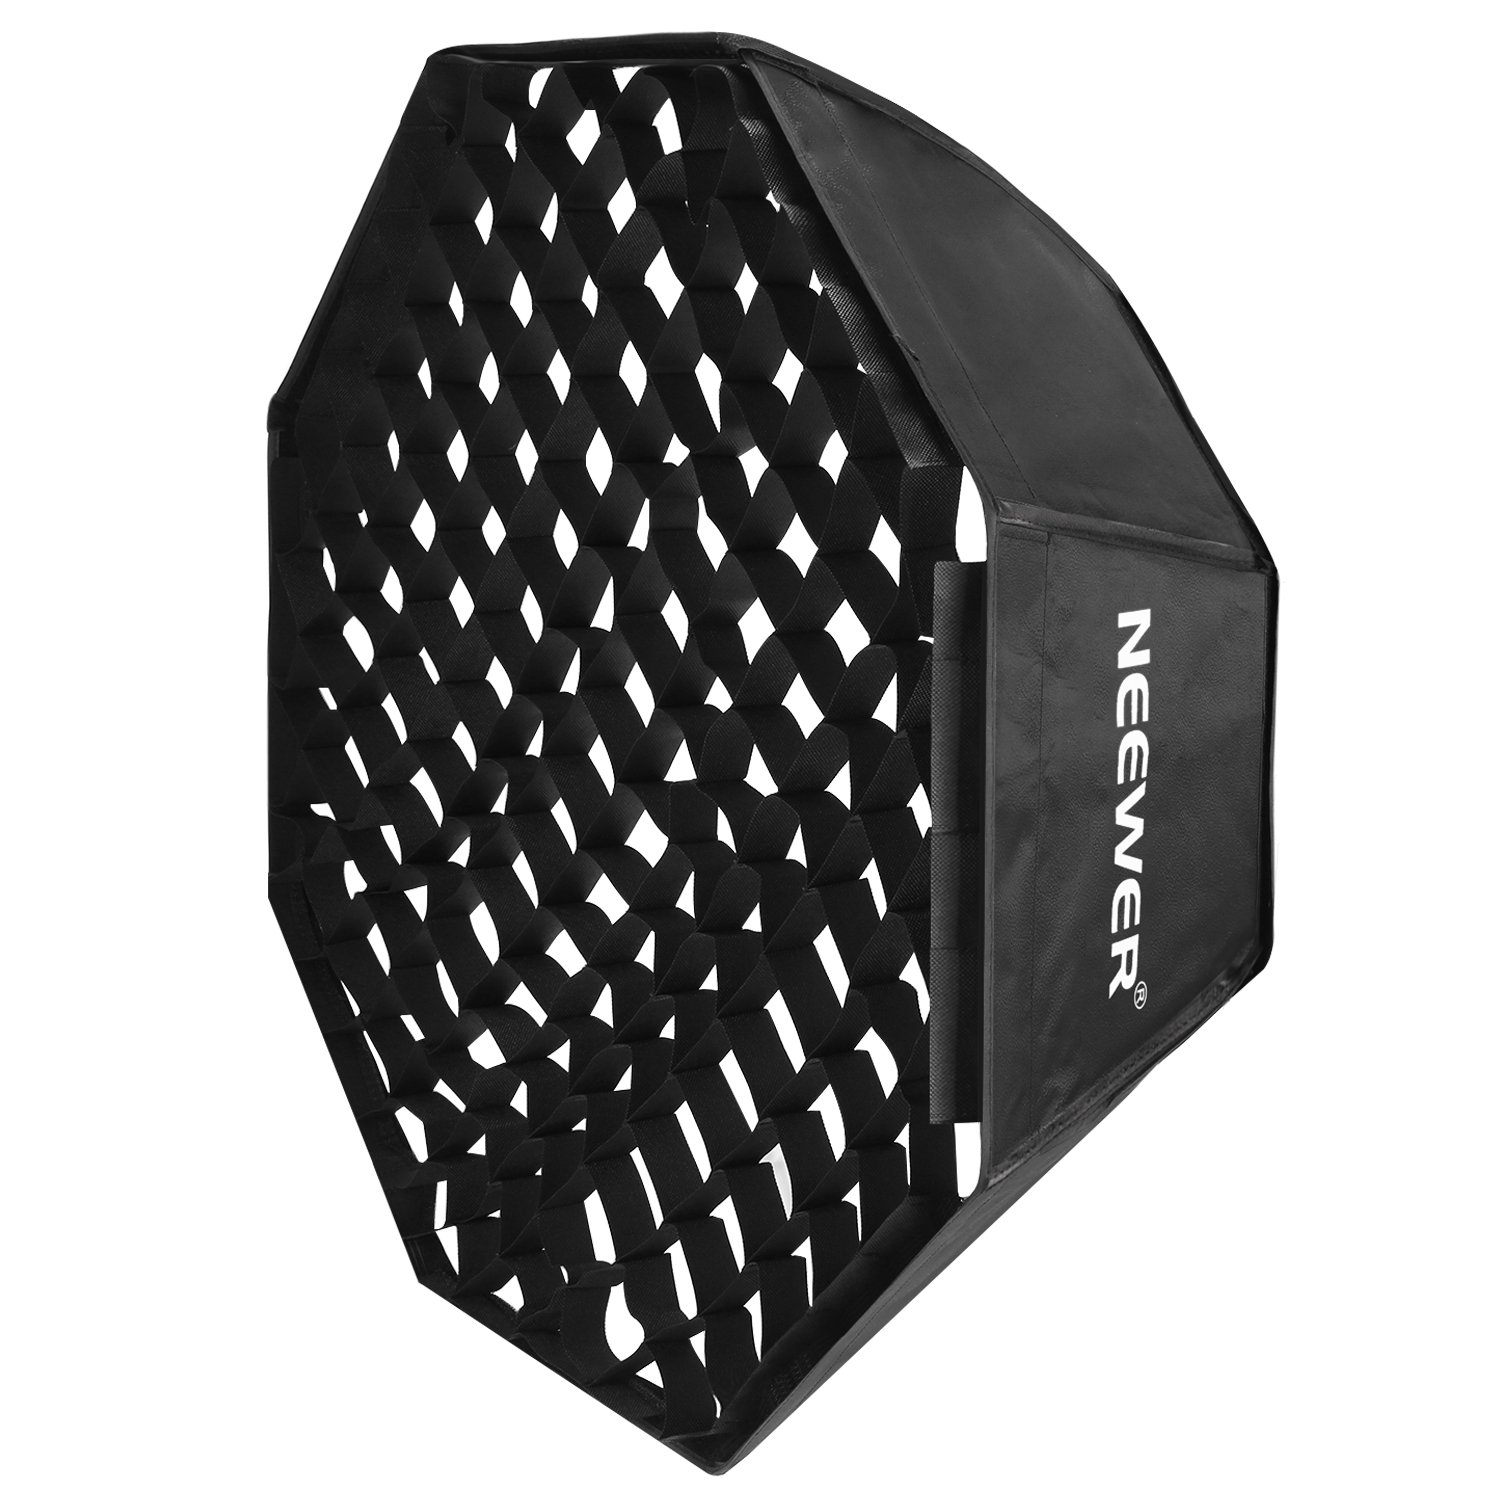 Neewer 32x32inches/80x80centimeters Octagon Flash Softbox with Grid and Bowens Mount Speedring Compatible with Nikon Canon Sony Pentax Olympus Panasonic Lumix Neewer Flash by Neewer